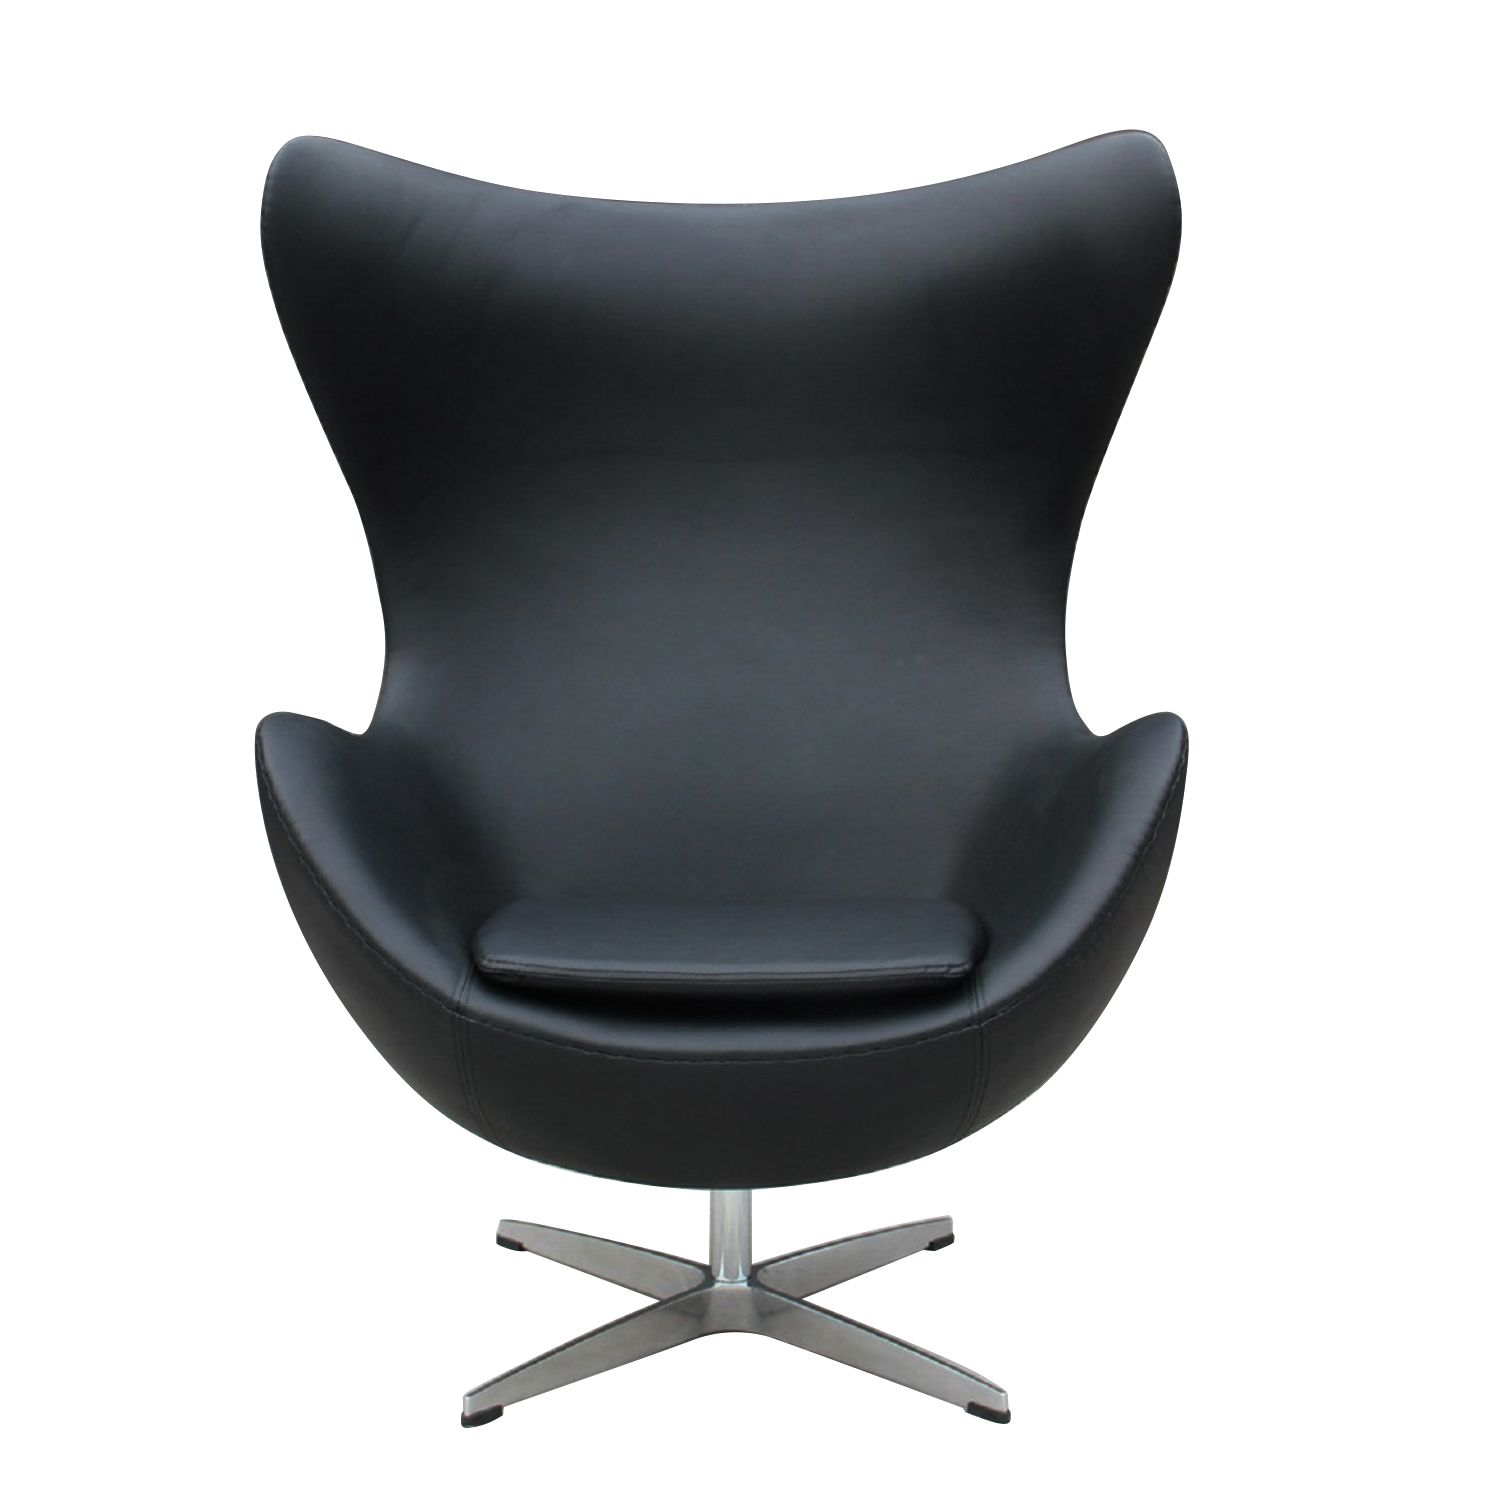 arne jacobsen egg chair replica. The Egg Chair Inspired By Arne Jacobsen   Office Furniture, Chairs, Supplies In Dublin Ireland OfficeThinsInteriors.ie Replica